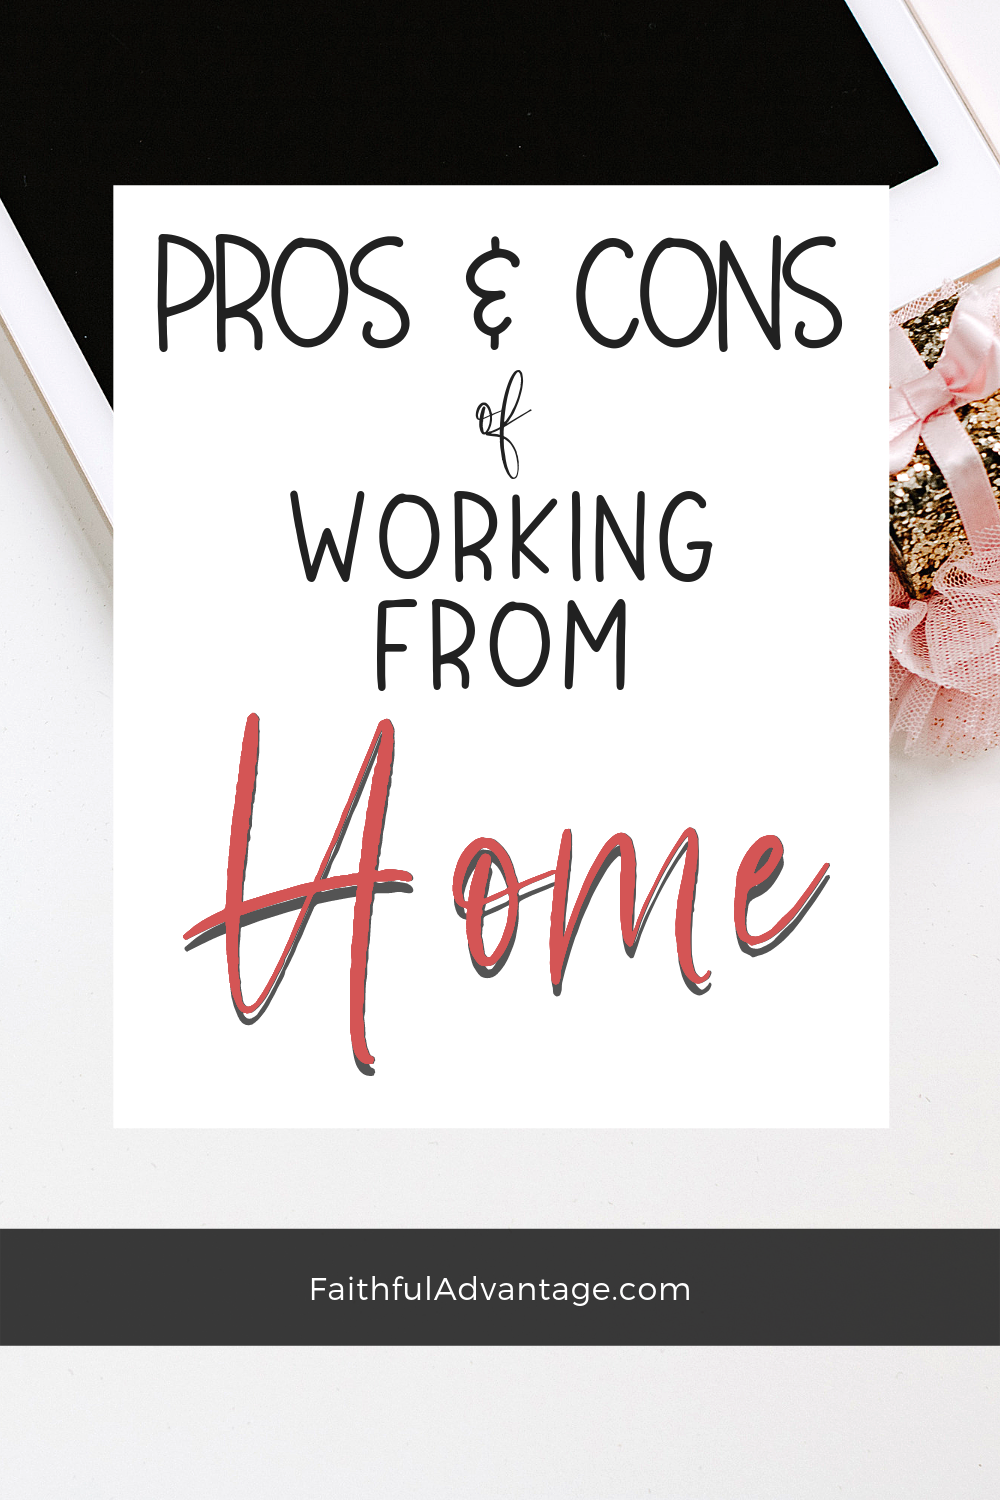 Pros and cons of working from home_Faithful Advantage